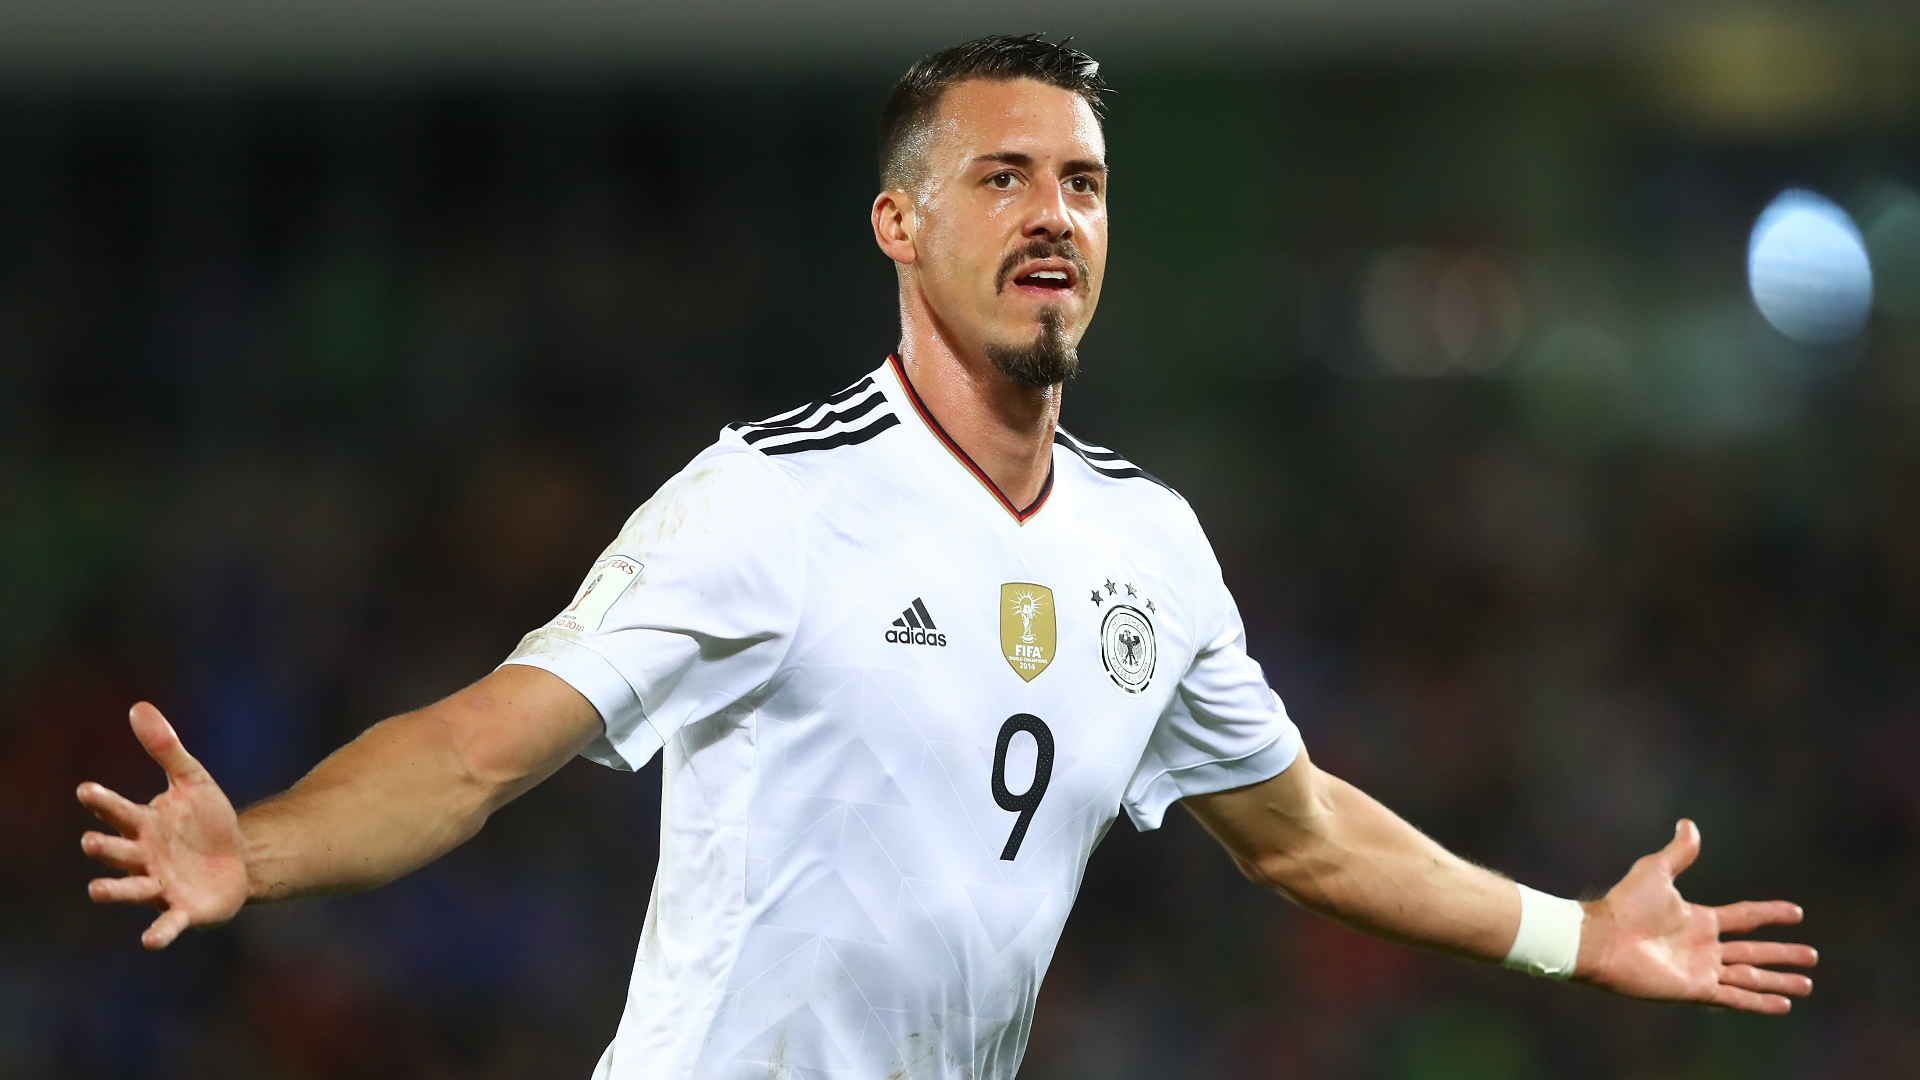 Maillot Extérieur FC Bayern München Sandro Wagner